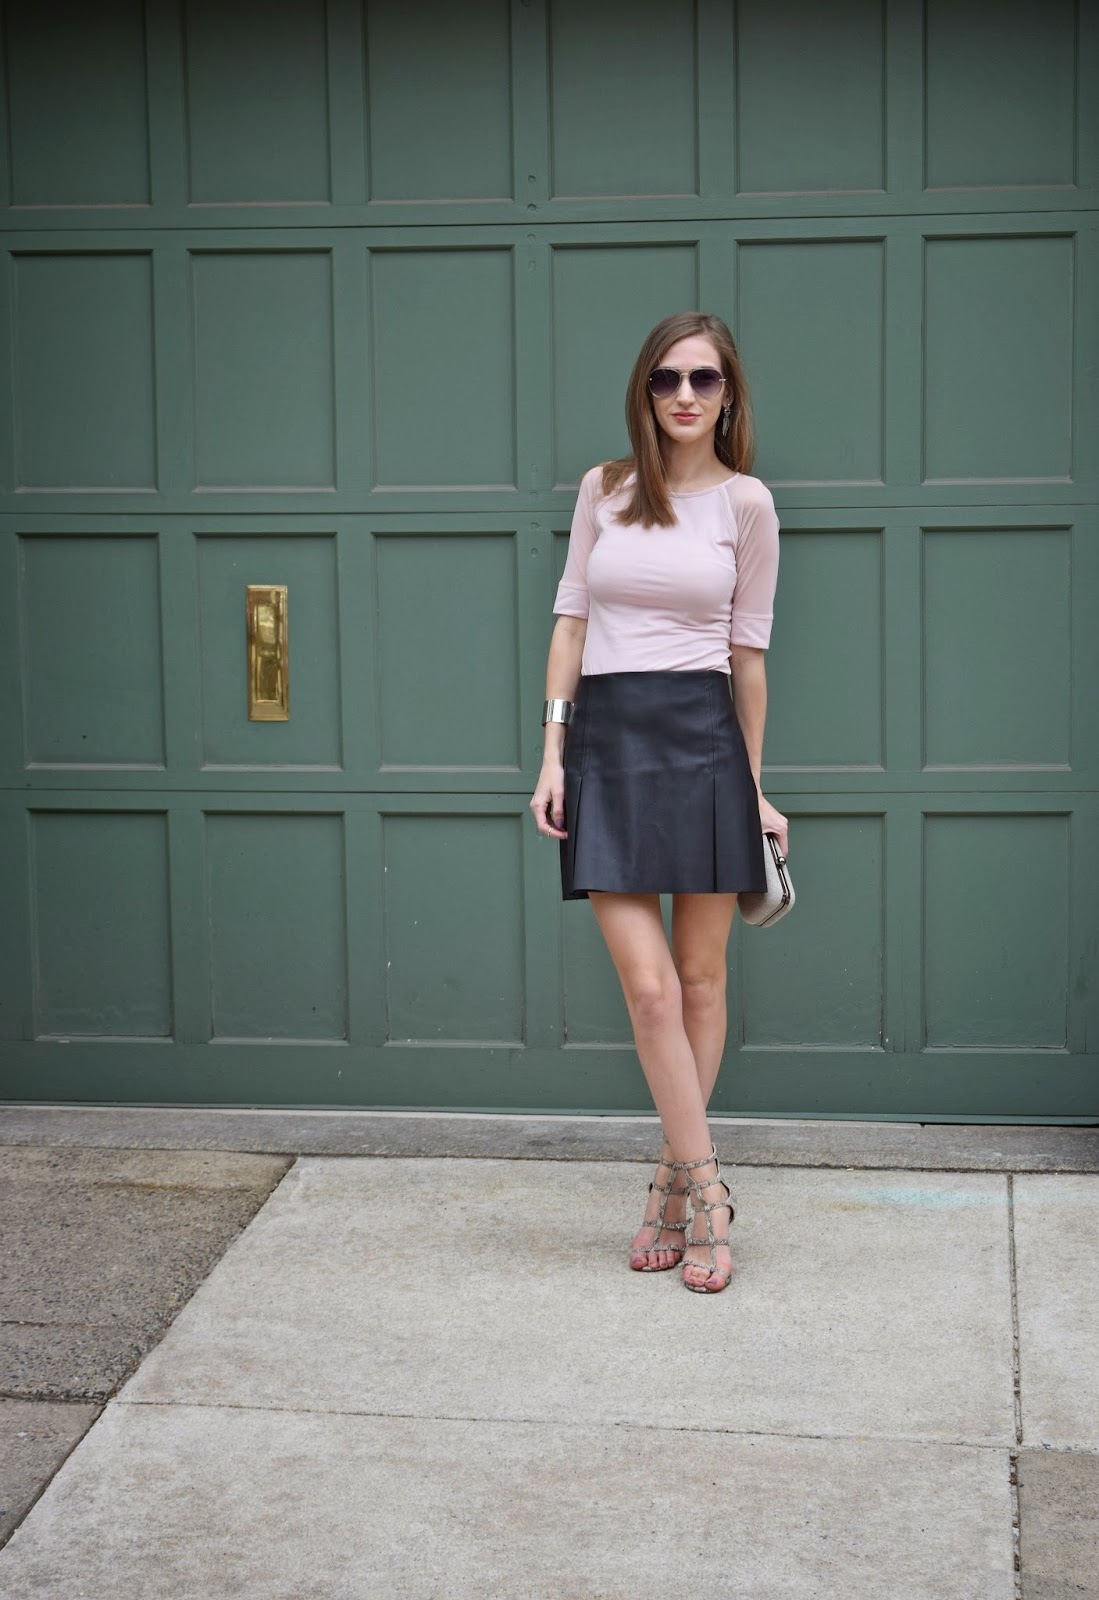 wearing Express faux leather pleated mini skirt, Express mesh sleeve pink top., BCBG gladiator heels